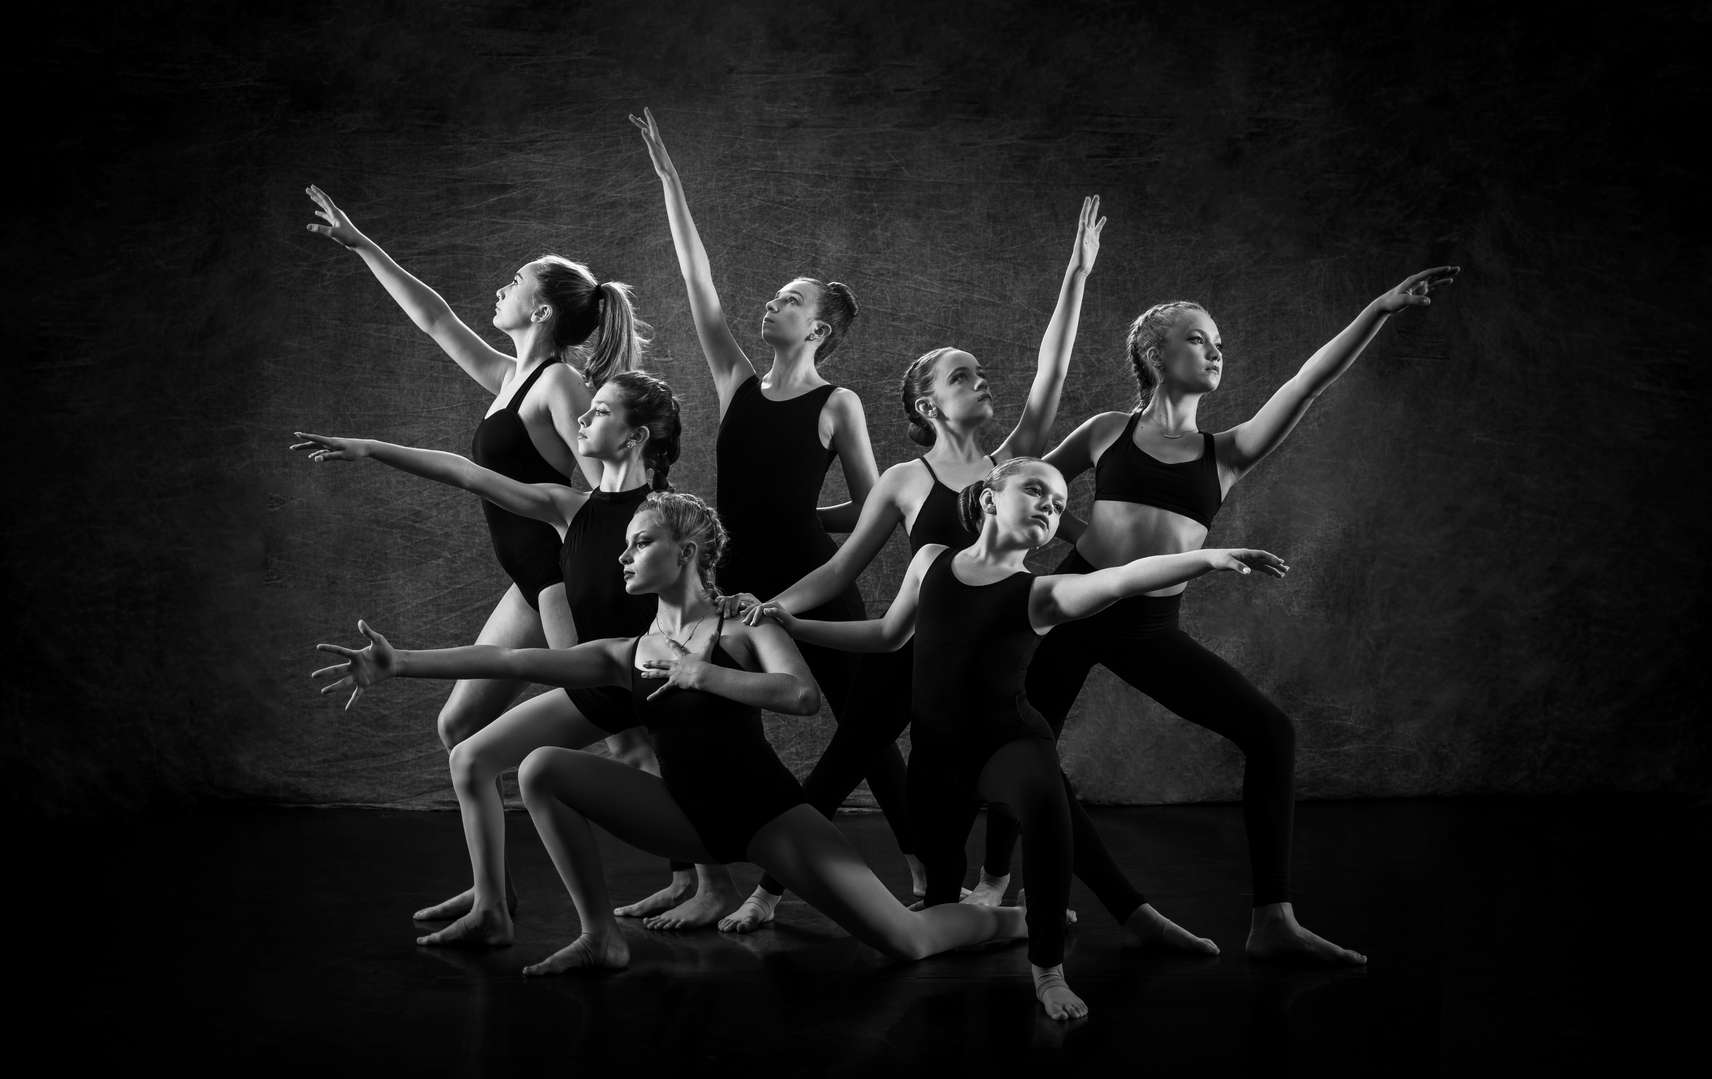 Vermont Dance Photography